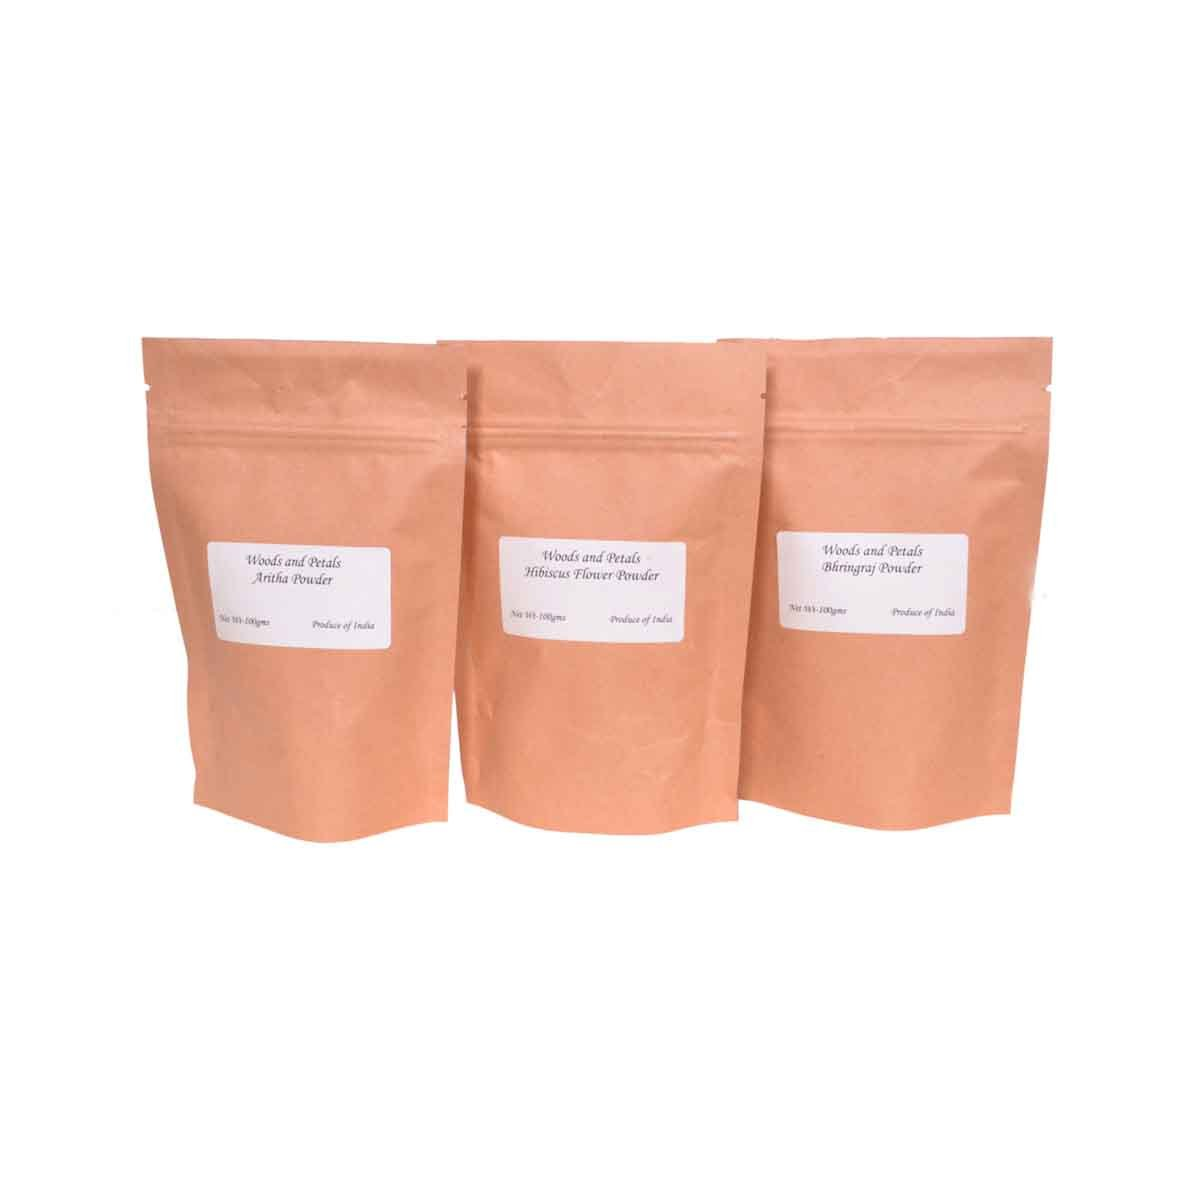 Amla powder hibiscus powder bhringraj powder (set of 3) I 300 gms I 10.60 oz woods and petals